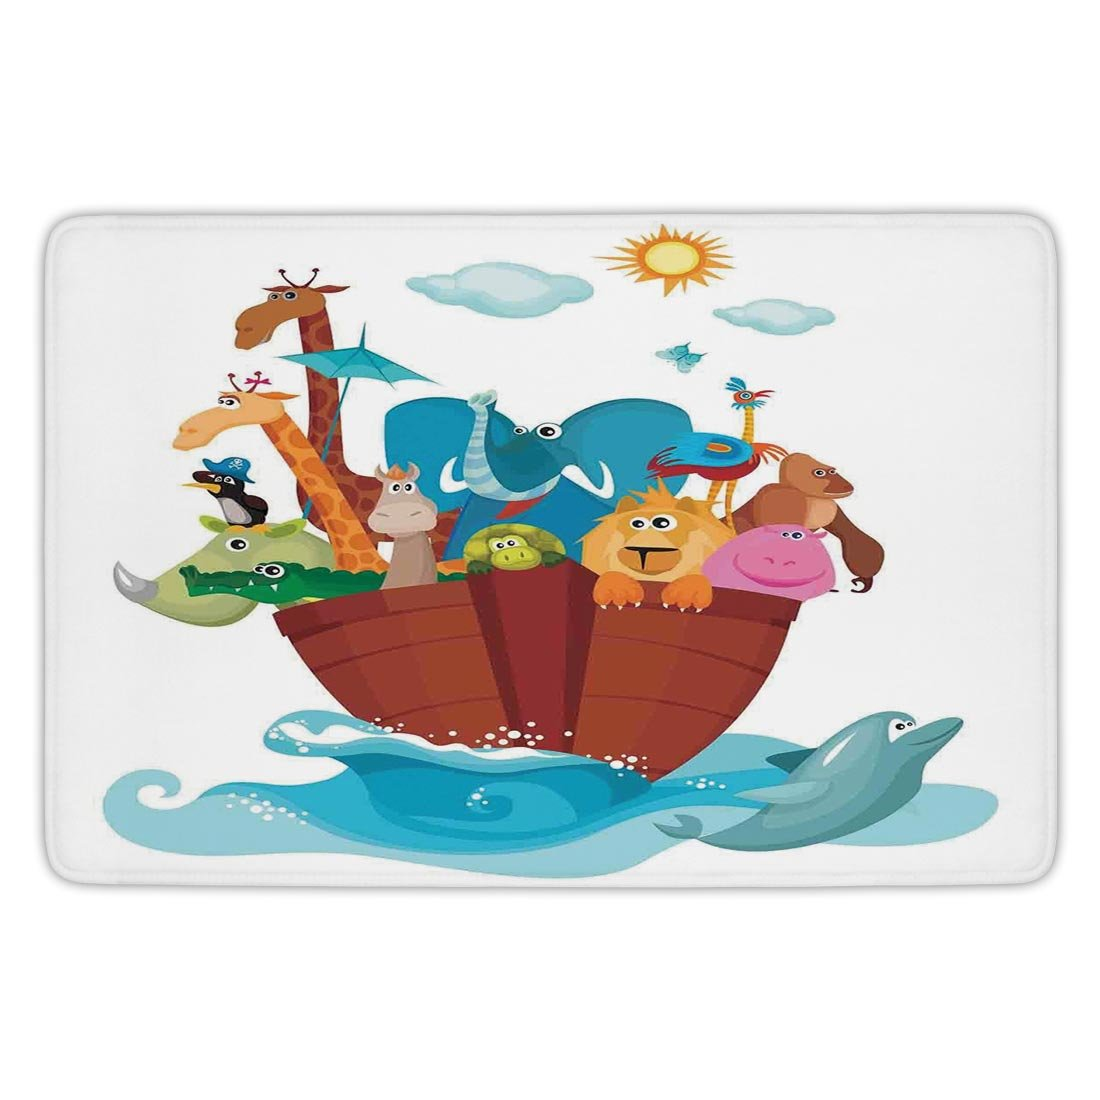 Bathroom Bath Rug Kitchen Floor Mat Carpet,Religious,Colorful Ark Ship with Set of Animals Old Ancient Religious Myths Artwork Print,Multicolor,Flannel Microfiber Non-slip Soft Absorbent